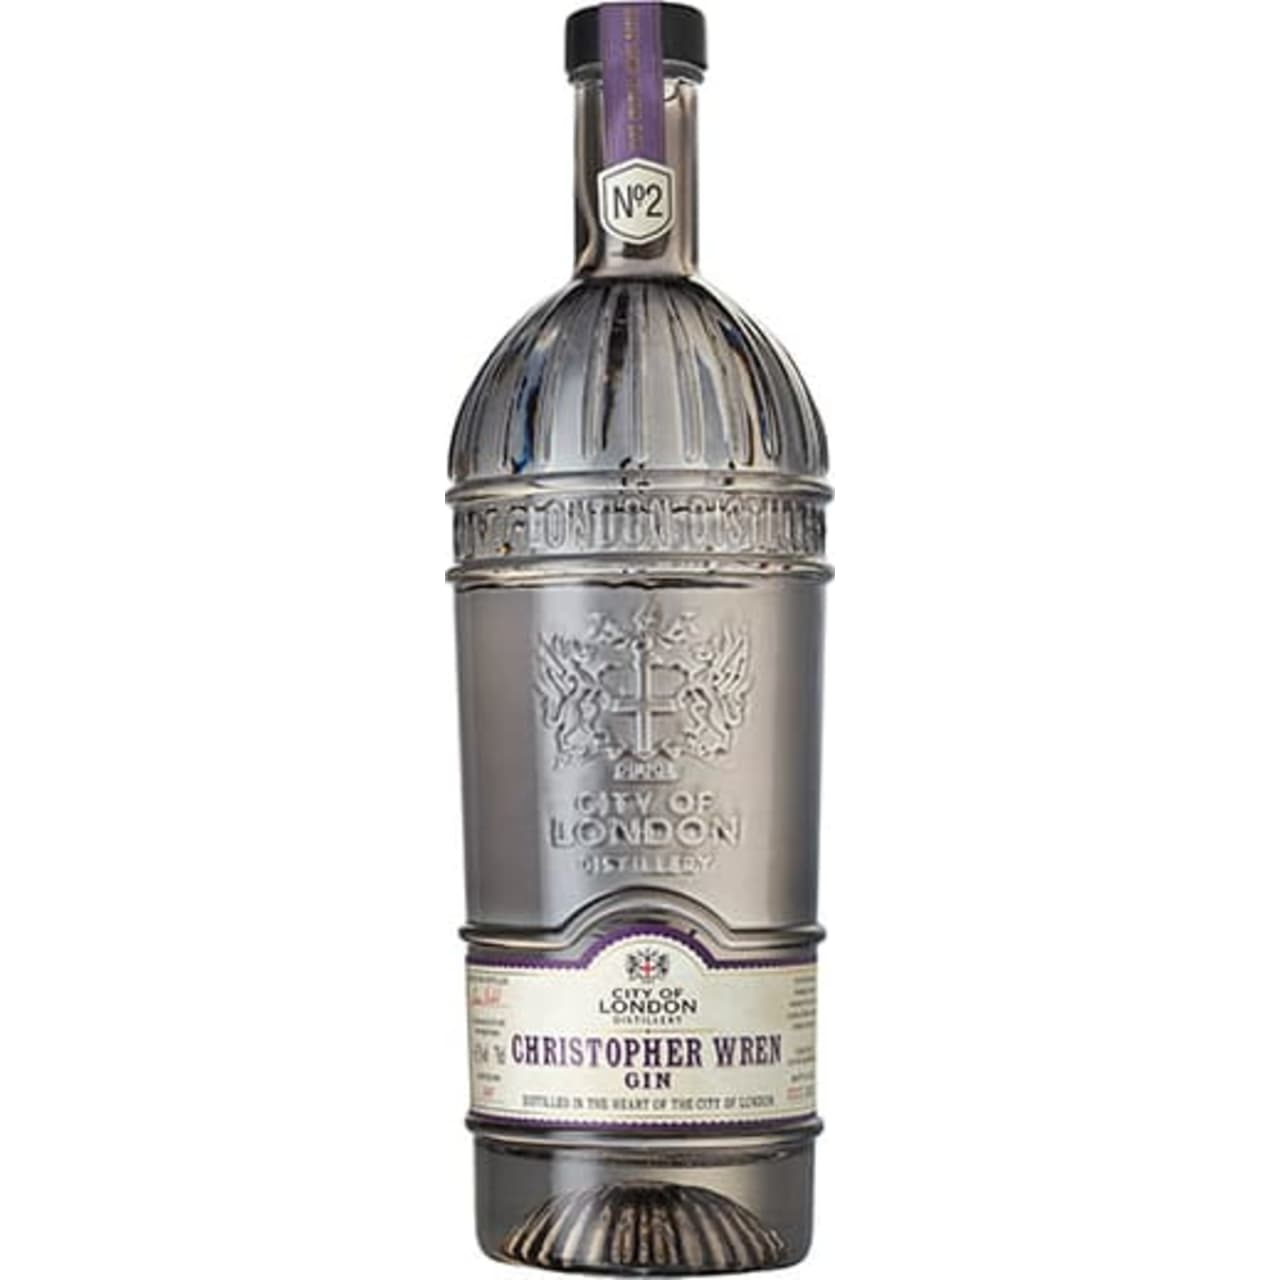 Product Image - City of London Sir Christopher Wren Gin